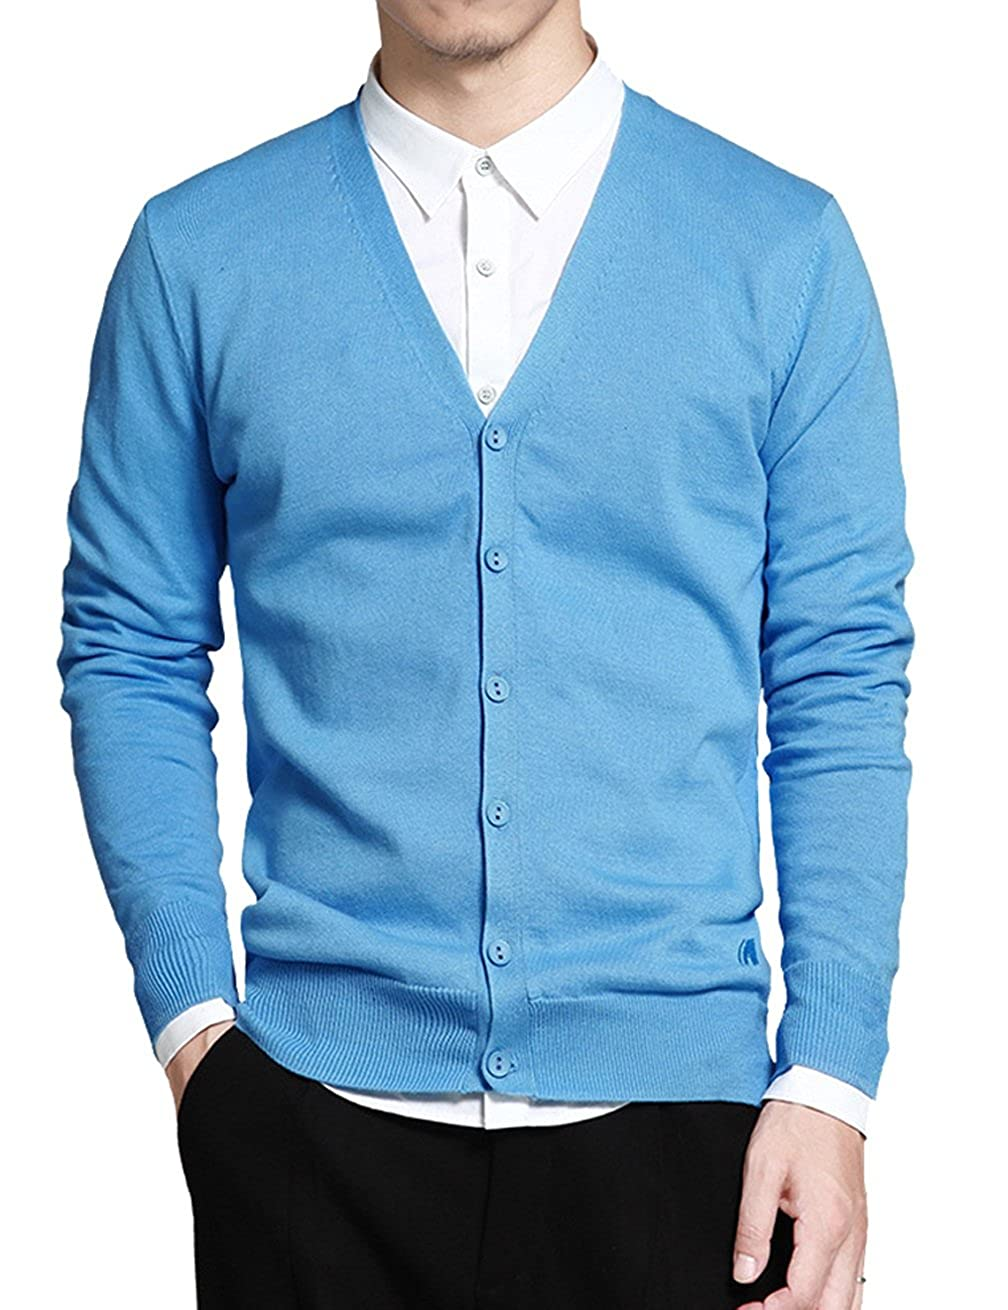 Gameyly Men's Cotton Button Cardigan Sweater